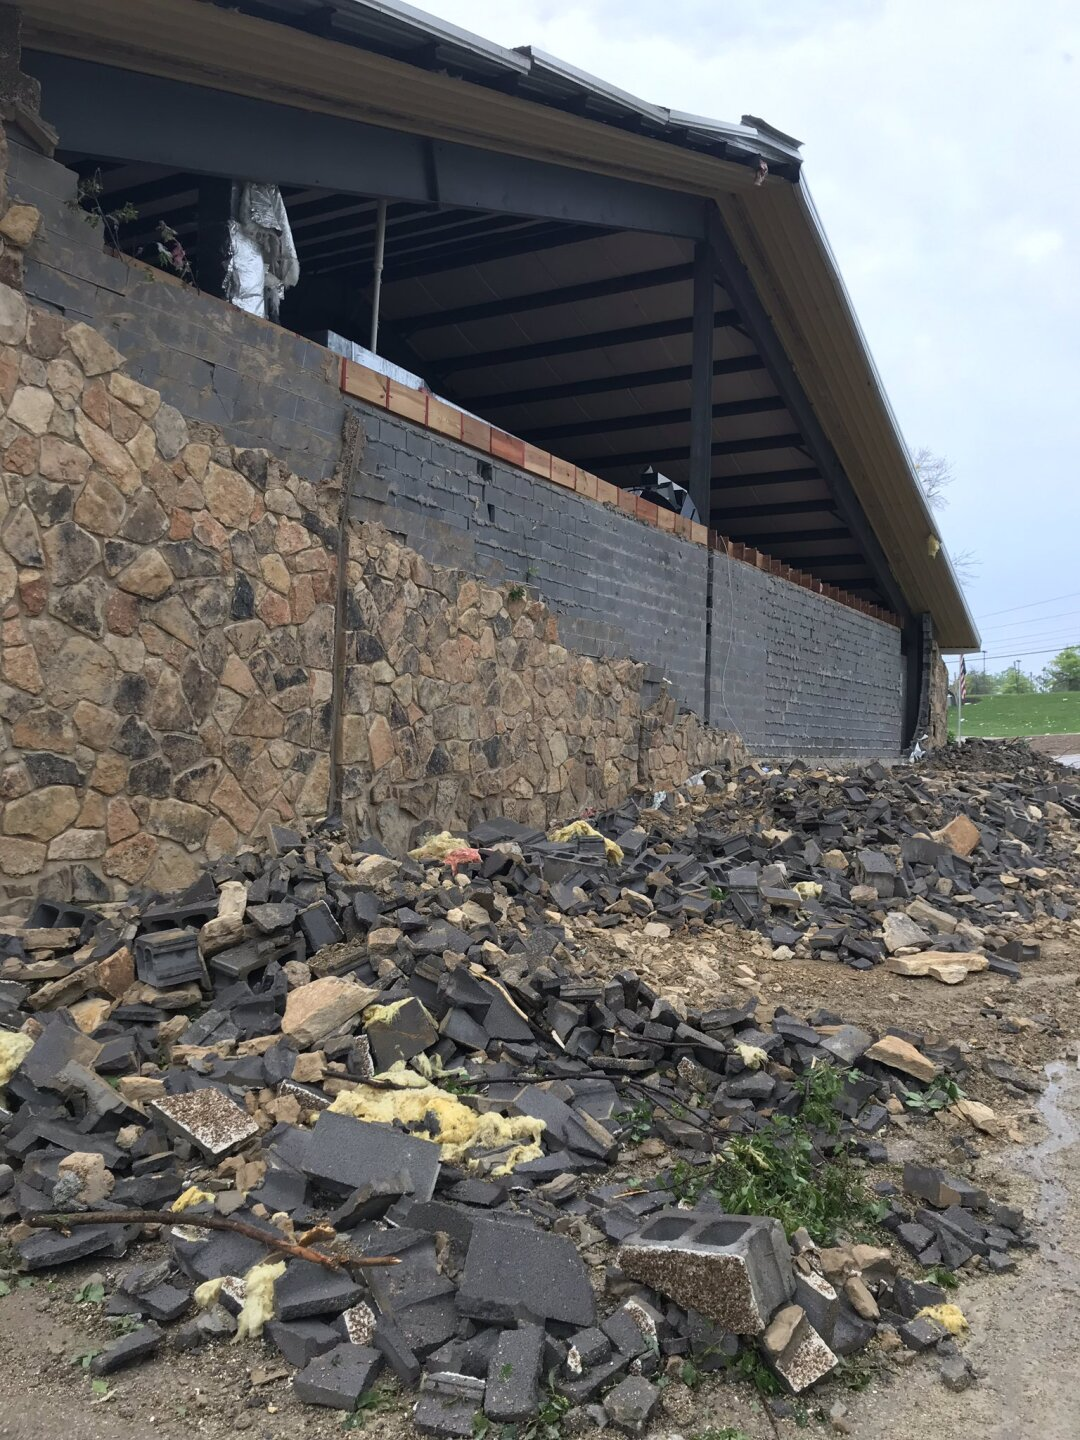 PHOTOS: Tornado leaves behind extensive damage in Jefferson City